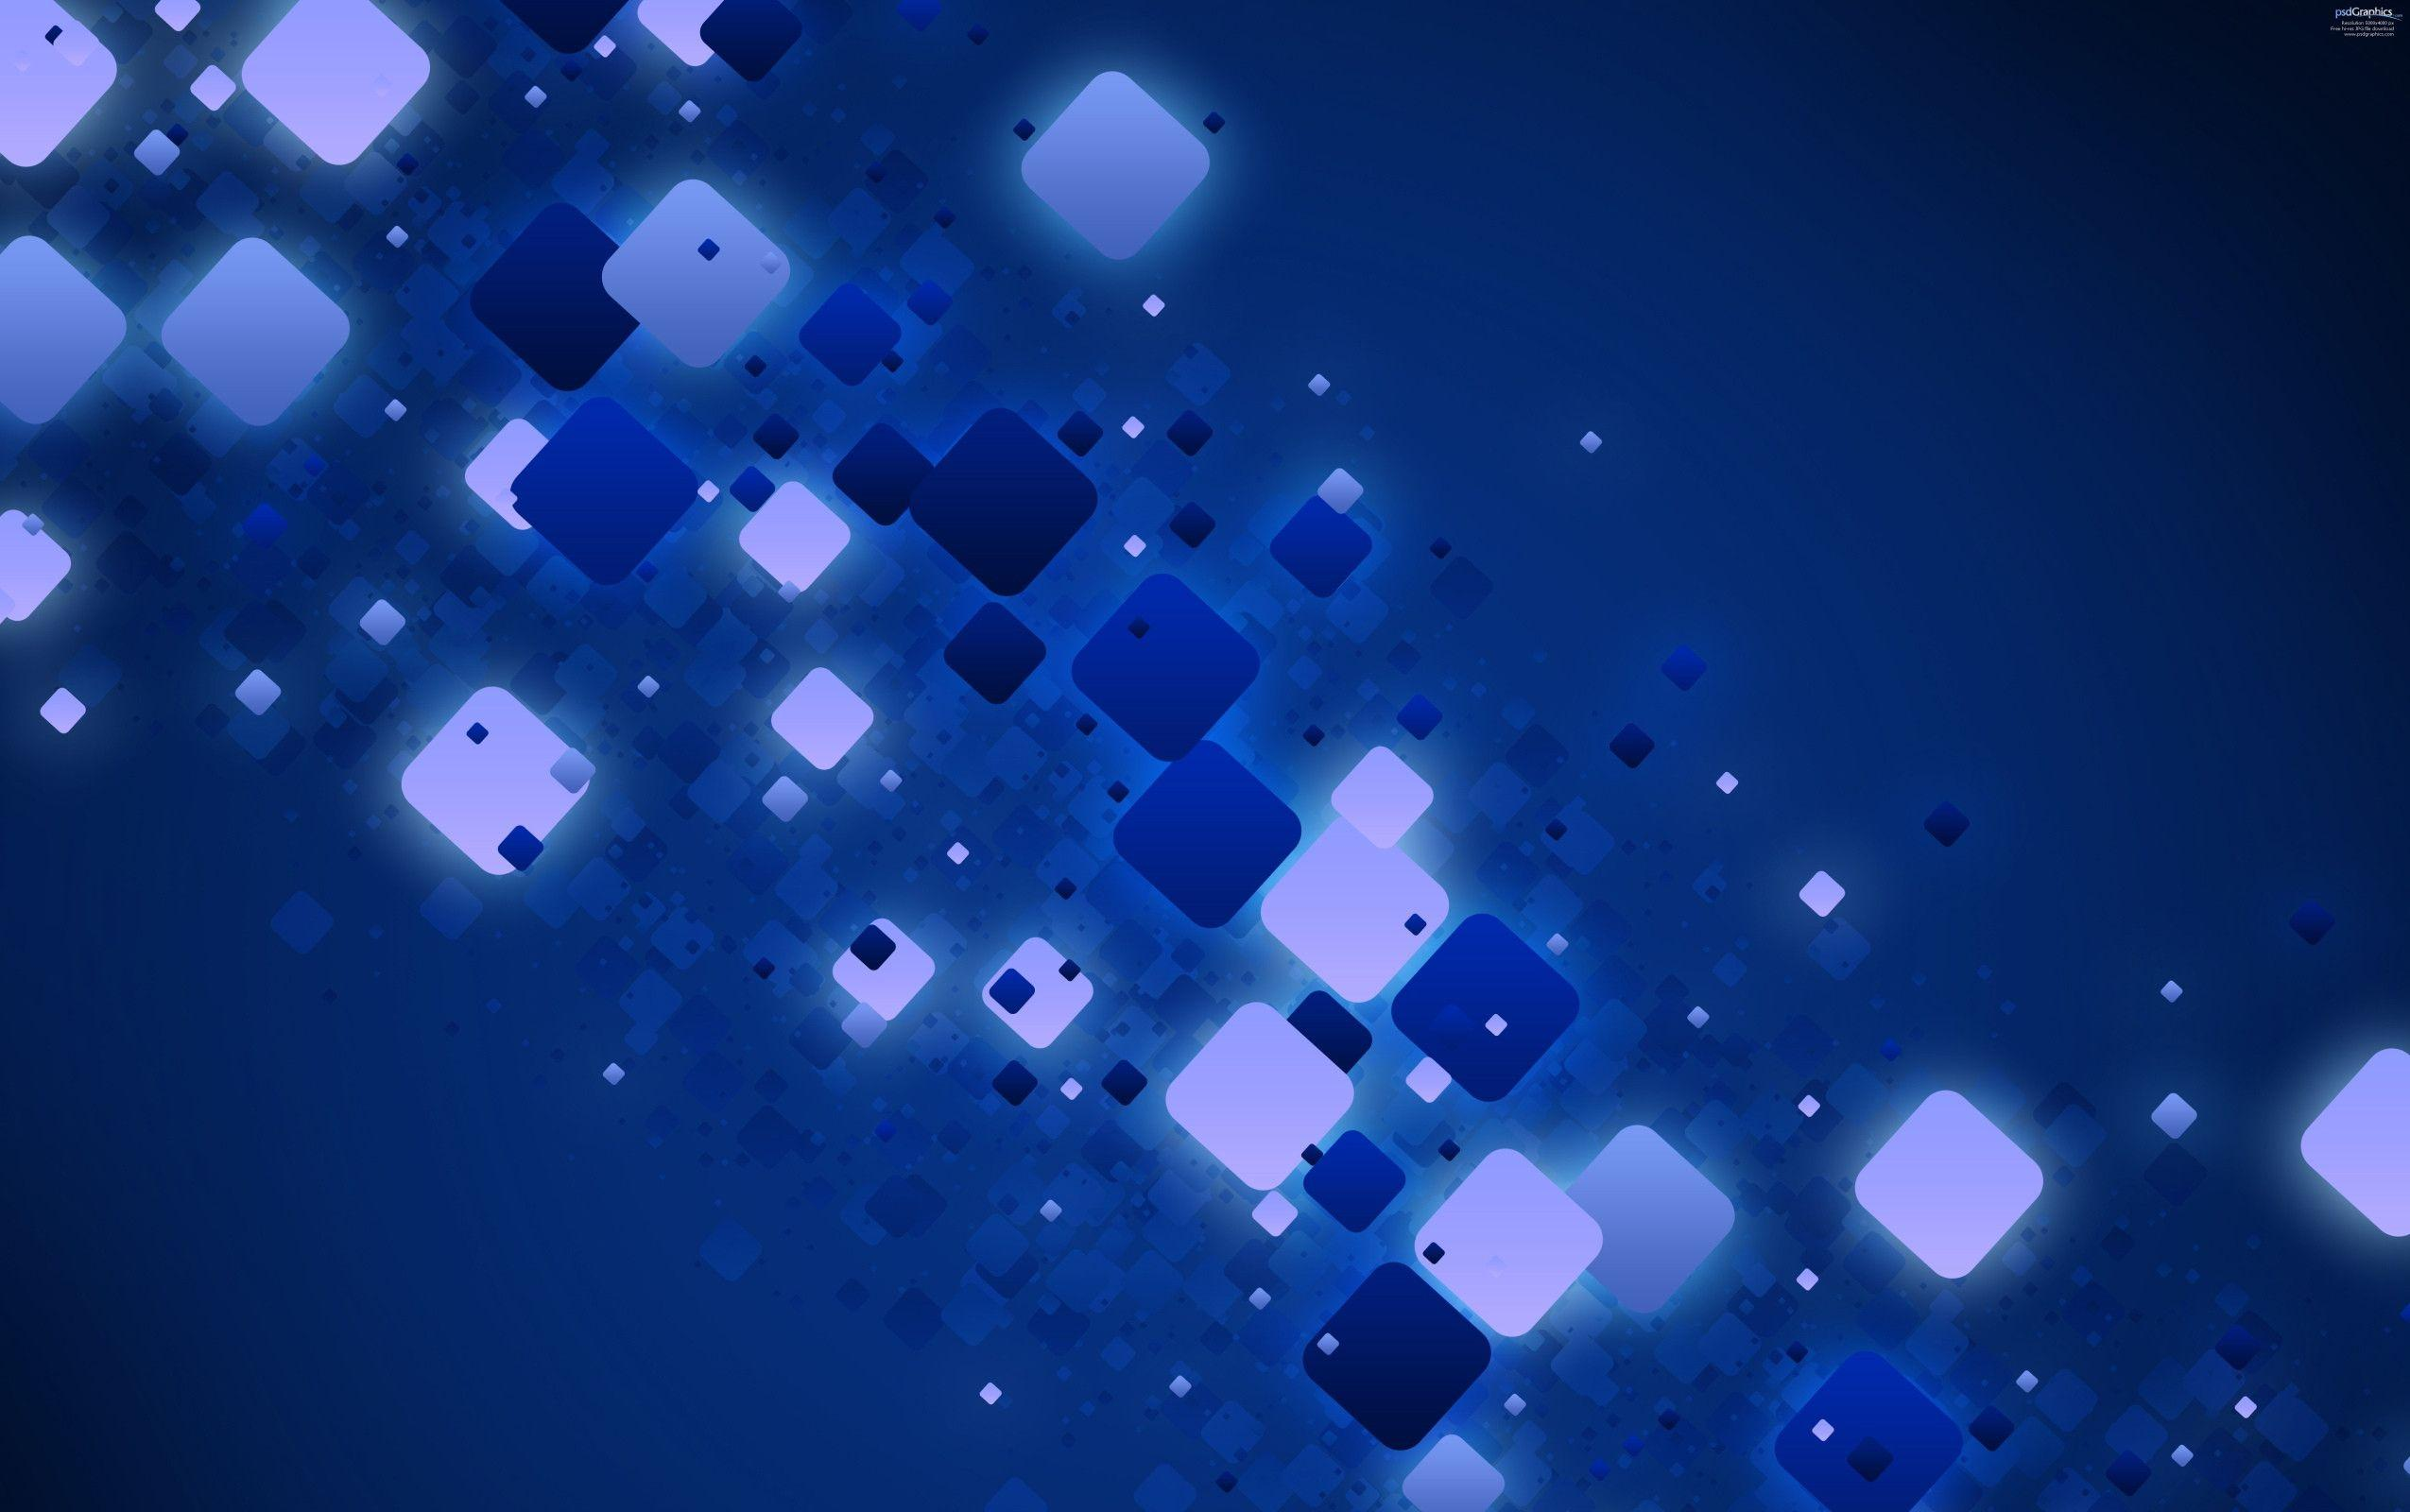 3d wallpaper blue light - photo #11